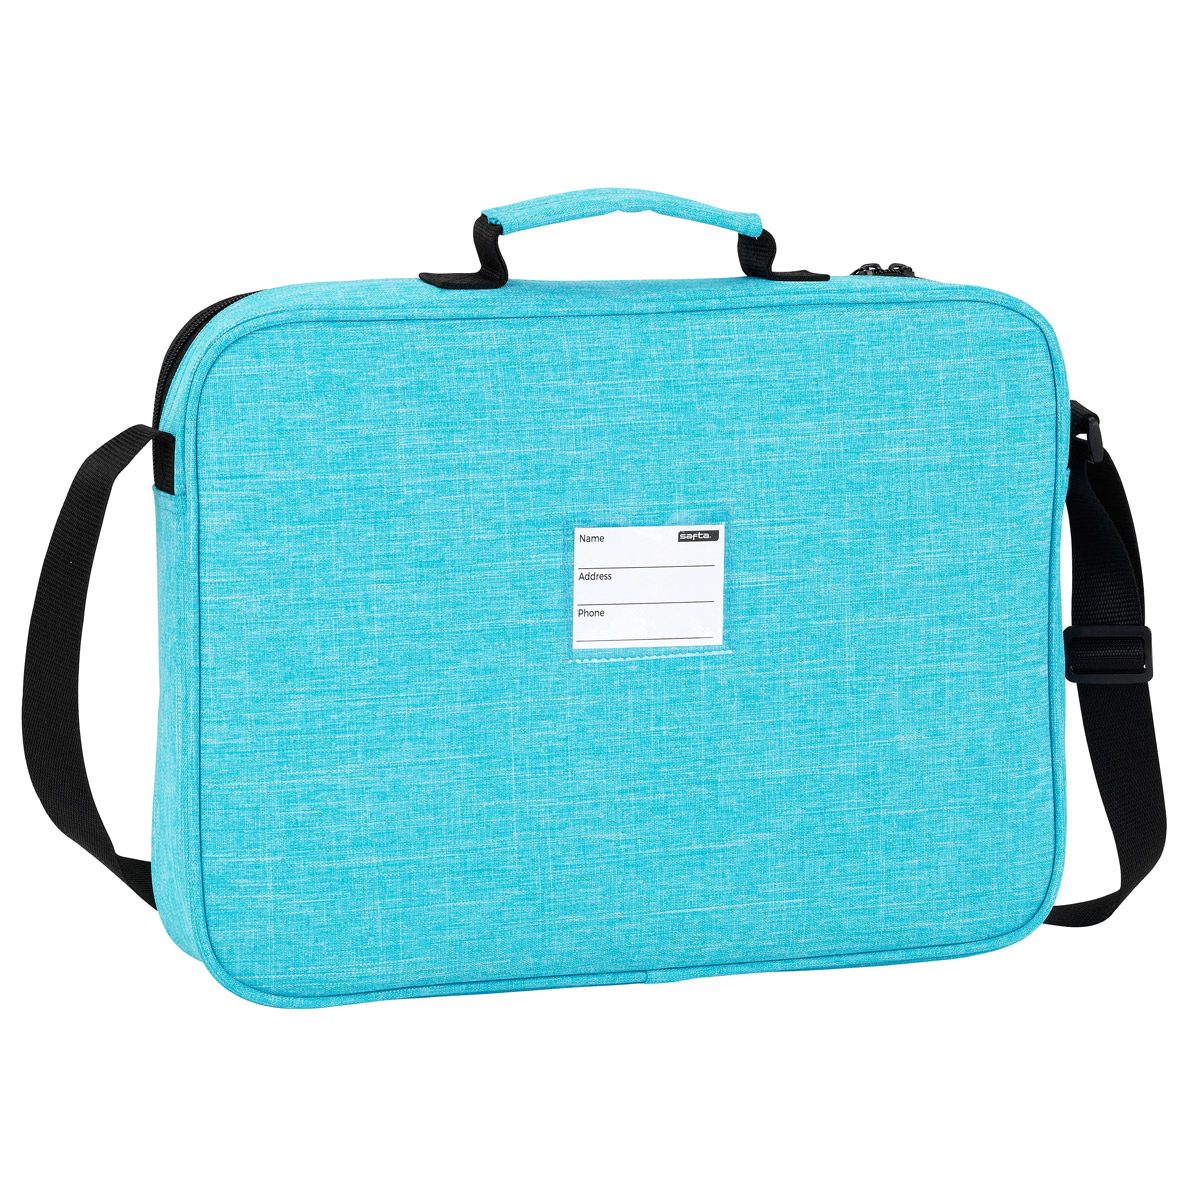 Blackfit8 Ocean Blue Messenger Bag – image 2